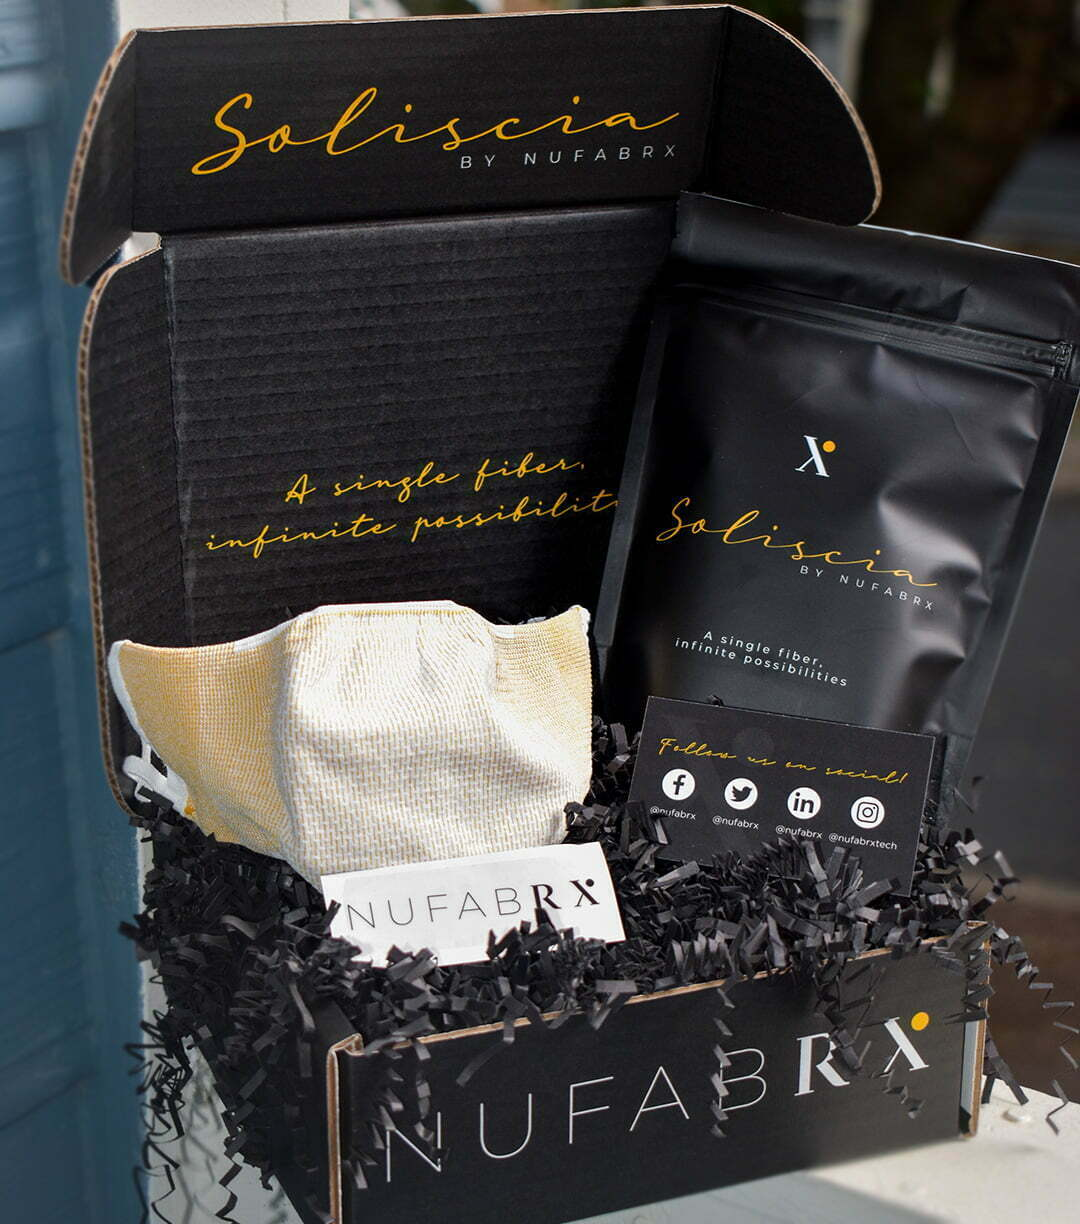 Soliscia by - Nufabrx CEO Jordan Schindler's anti-microbial, Shea-butter infused masks are such a hit that the Federal Government sent three Blackhawk helicopters to Schindler's facility to pick up a quarter-million masks.